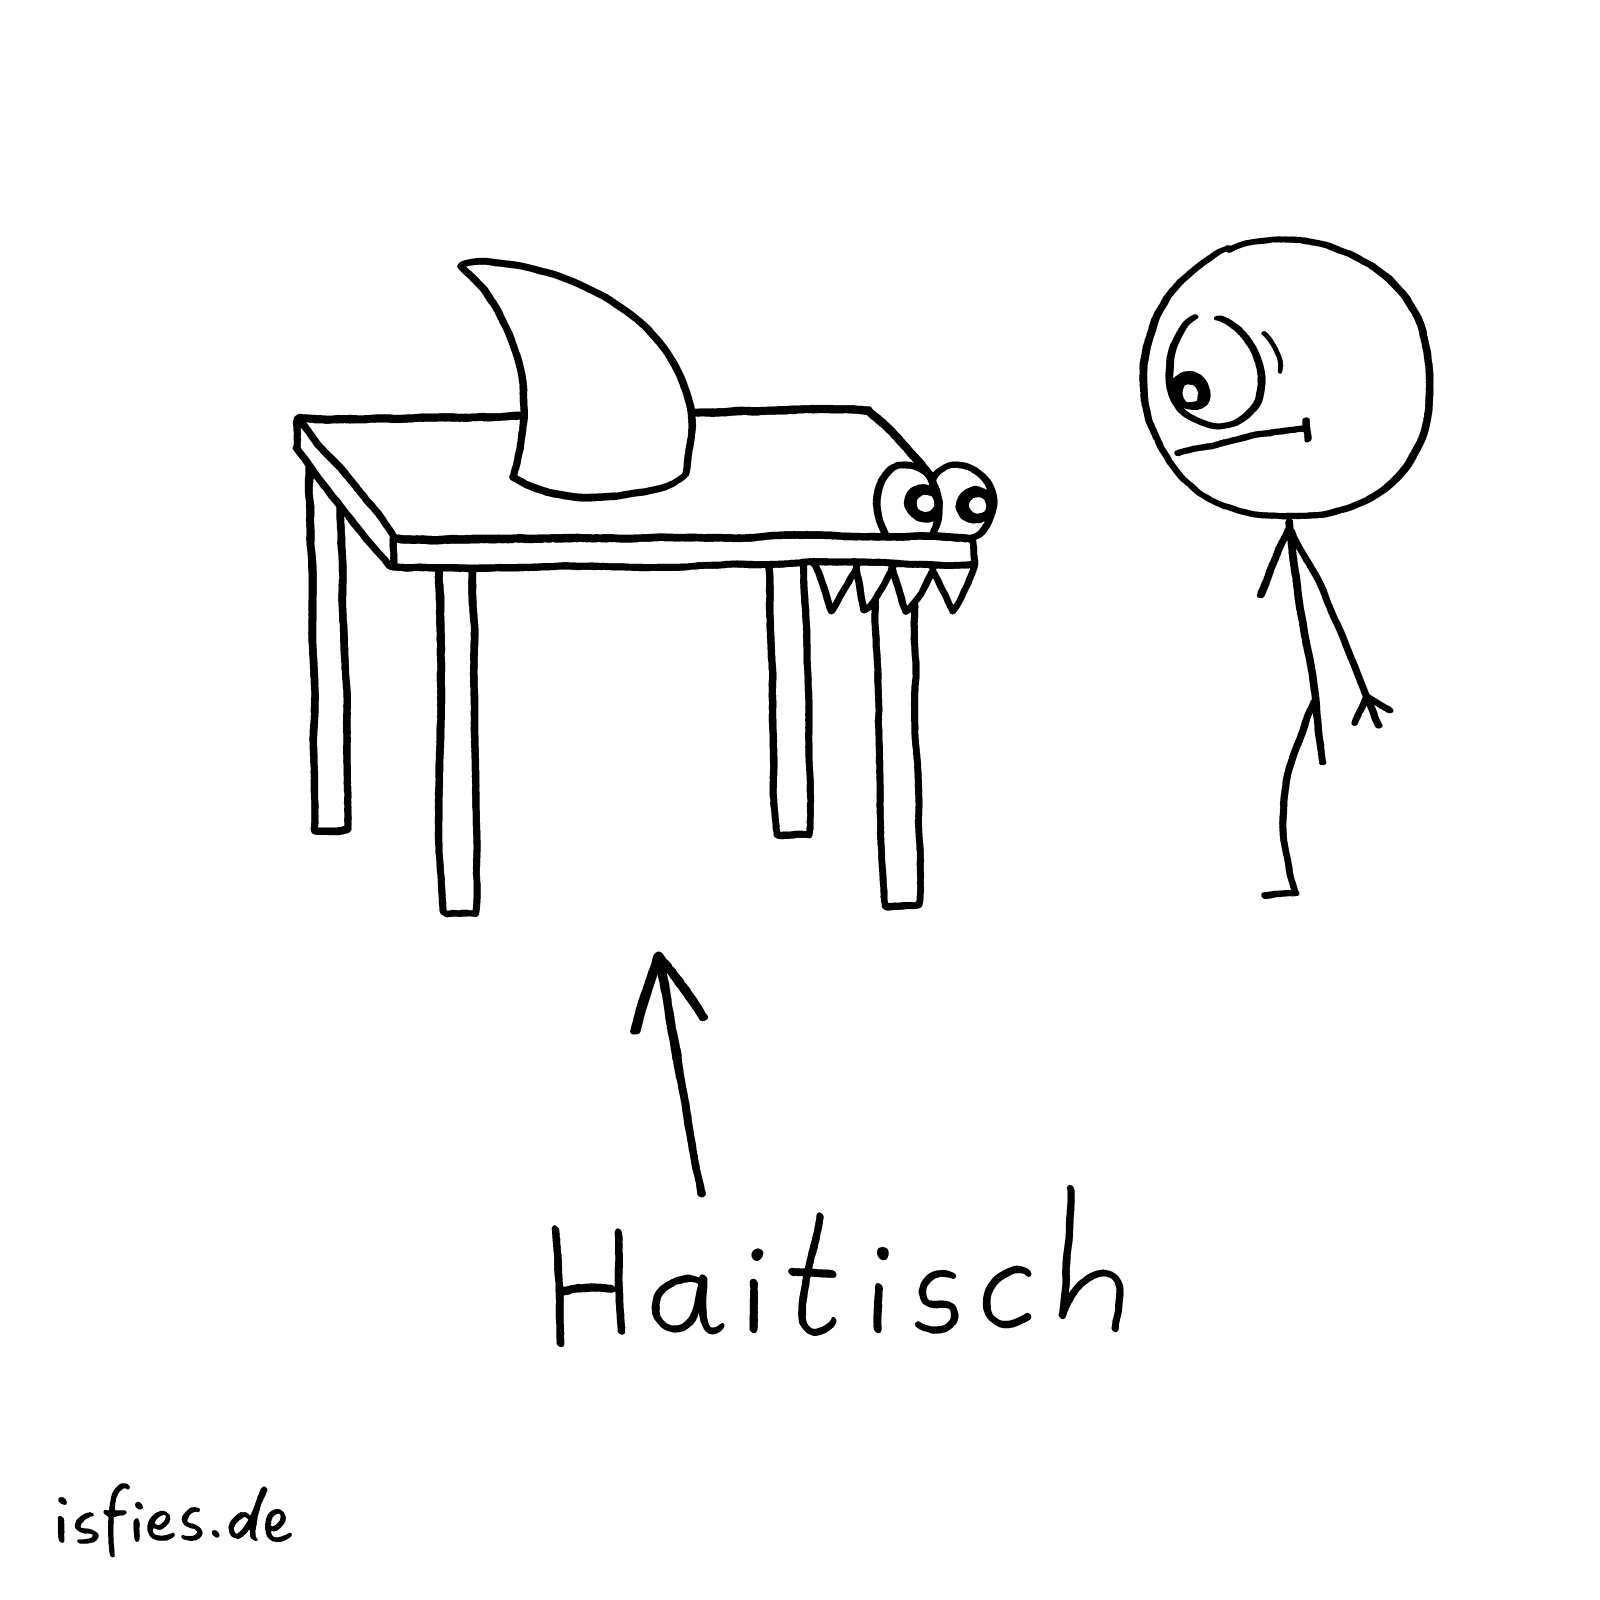 Haitisch isfies Cartoon